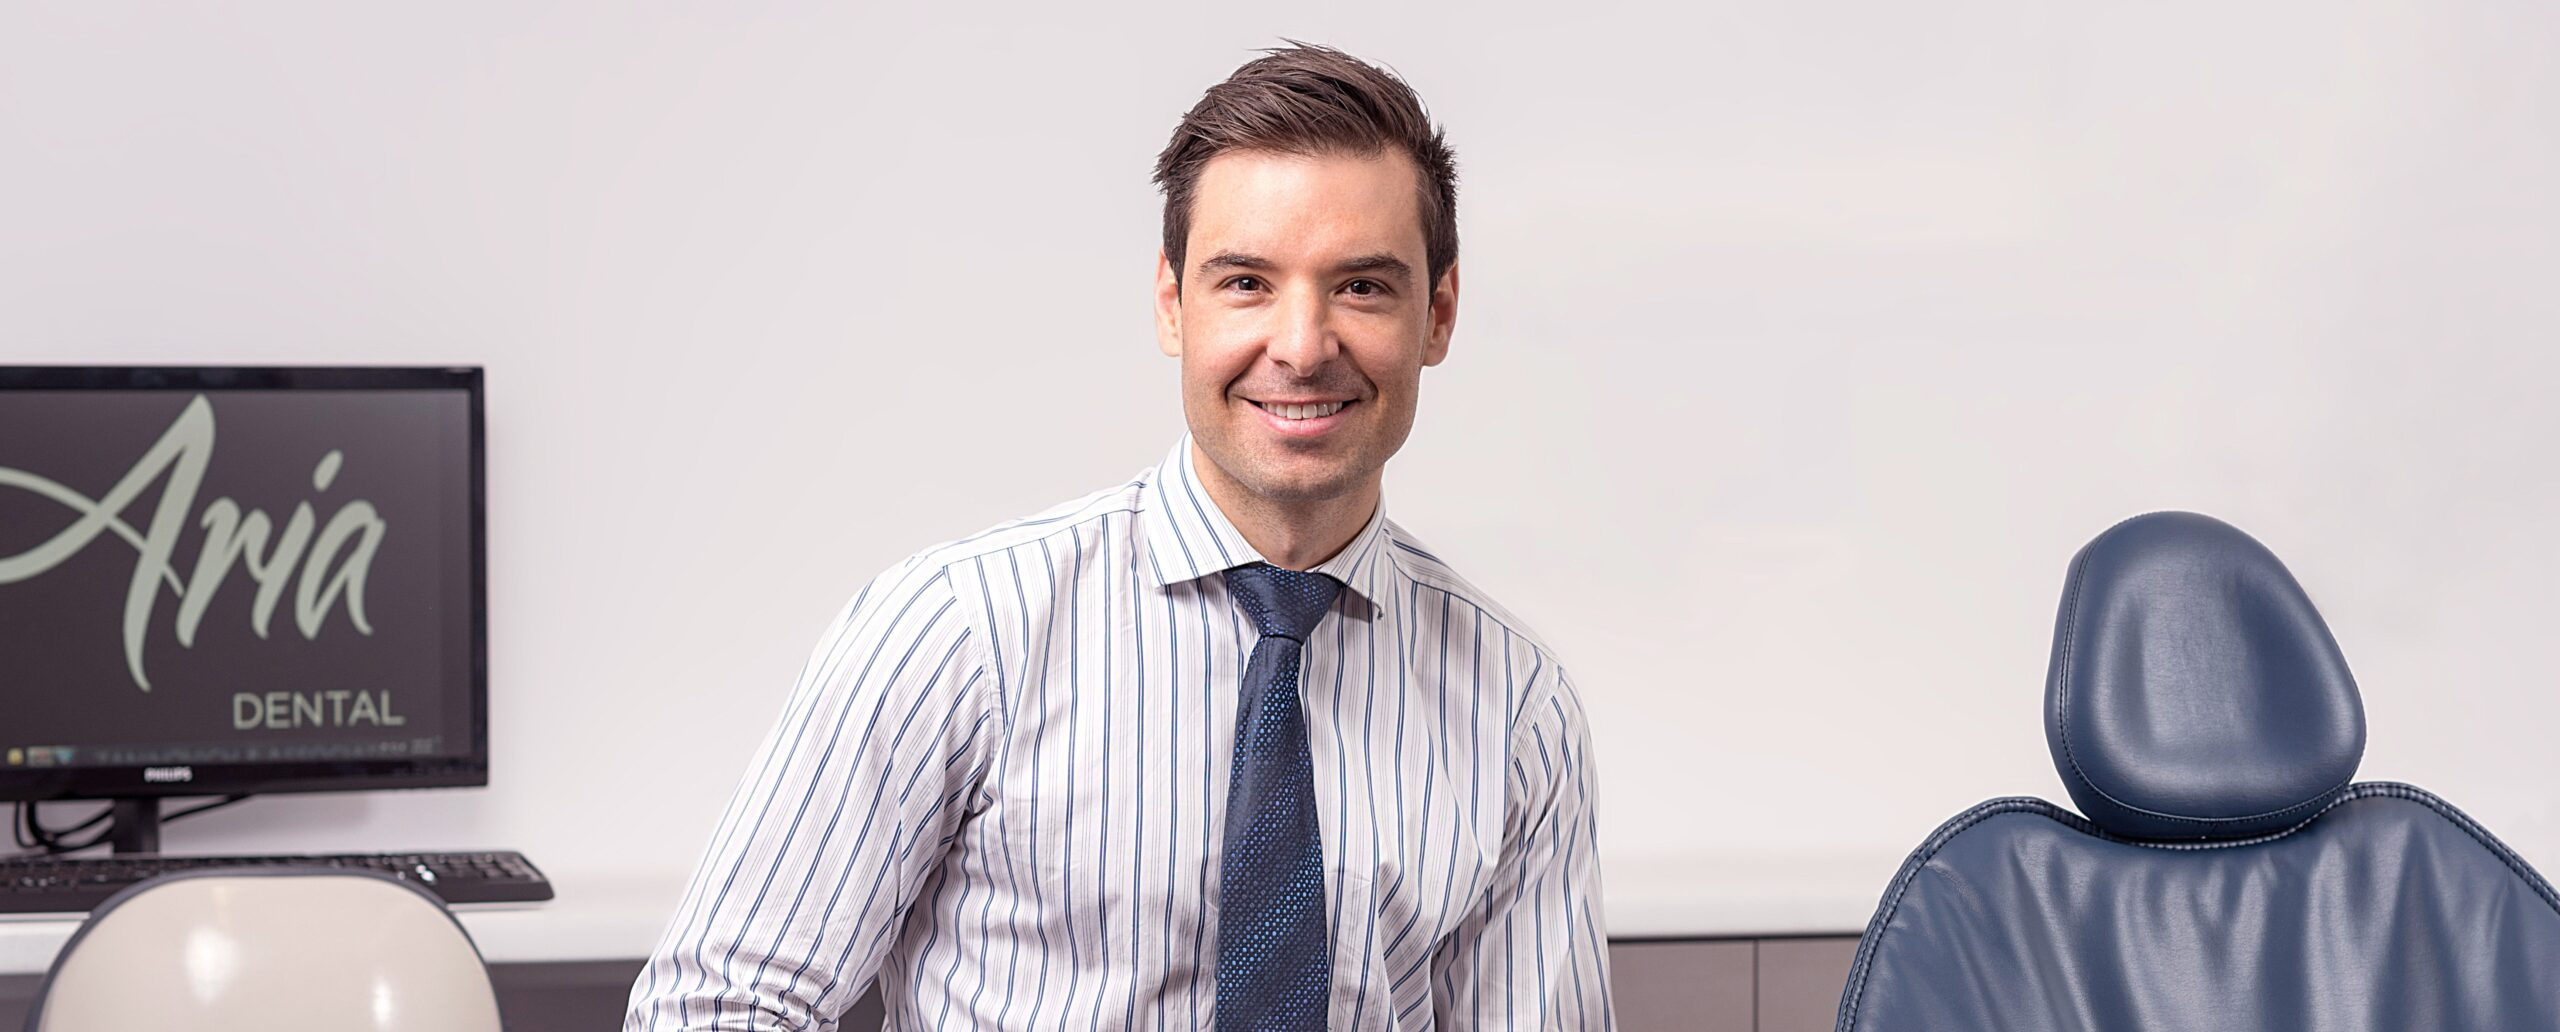 Dr Michael Zaninovich – leading prosthodontist at Aria Dental, Perth